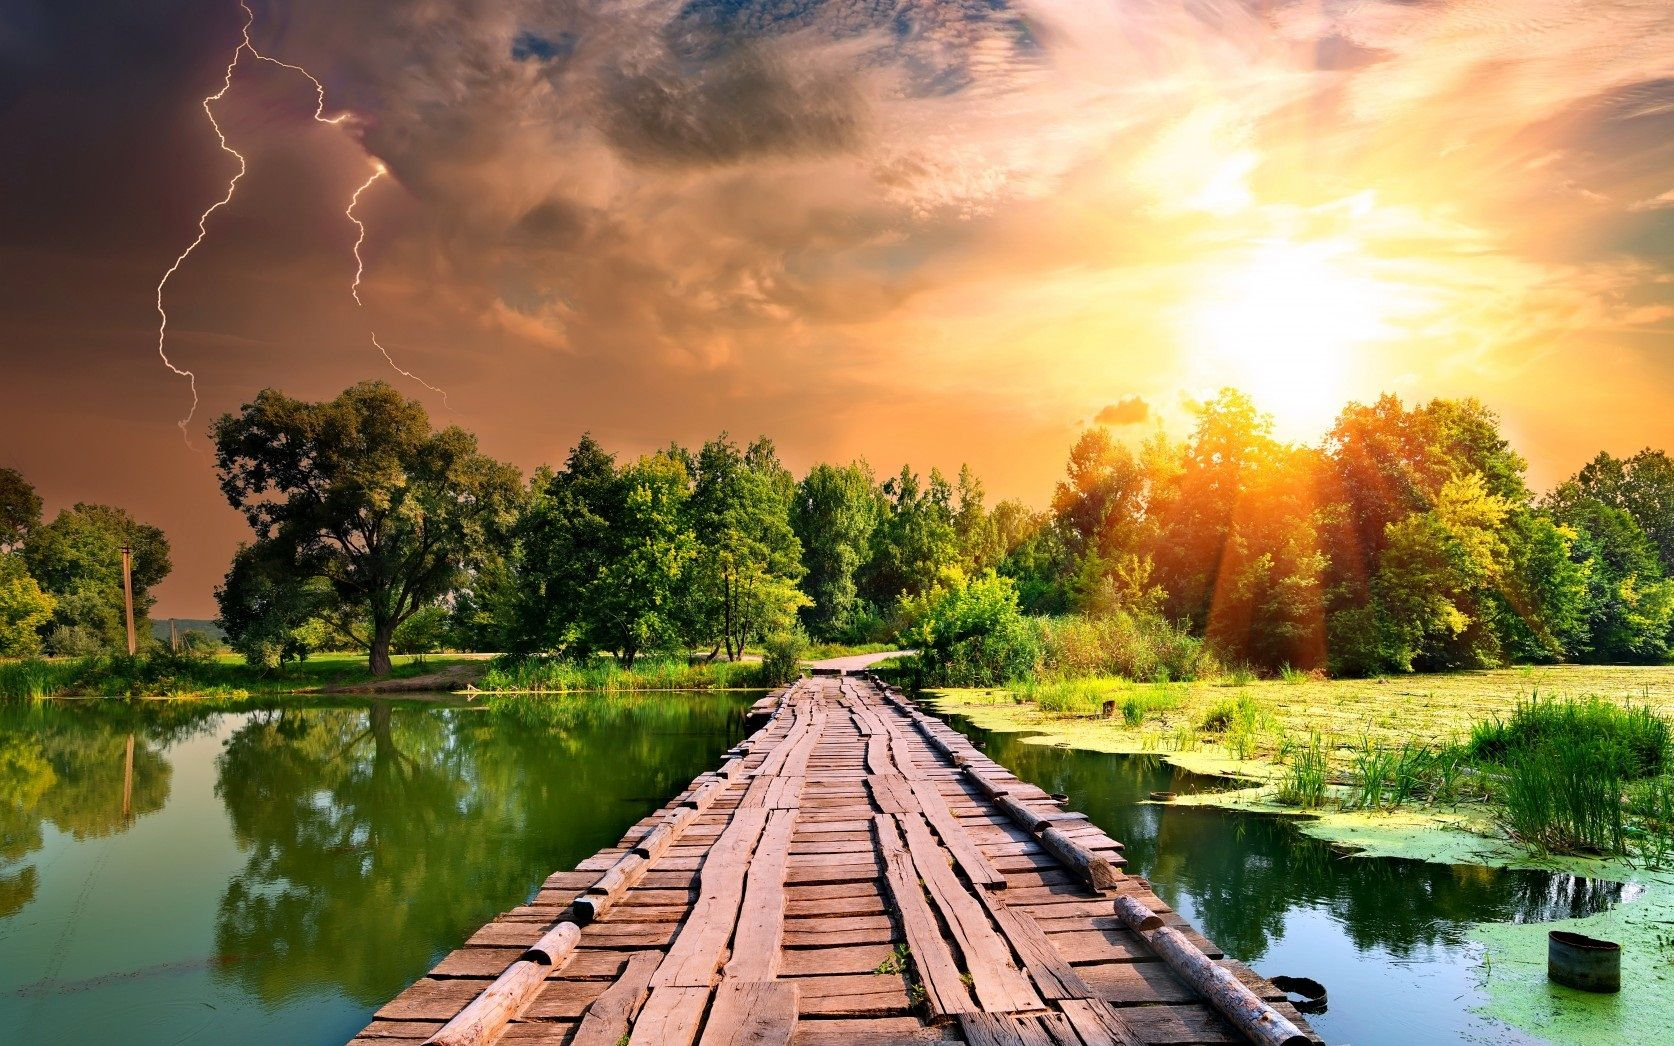 Best Nature Hd Wallpapers Hd Nature Wallpapers Nature Wallpaper Sunset Wallpaper